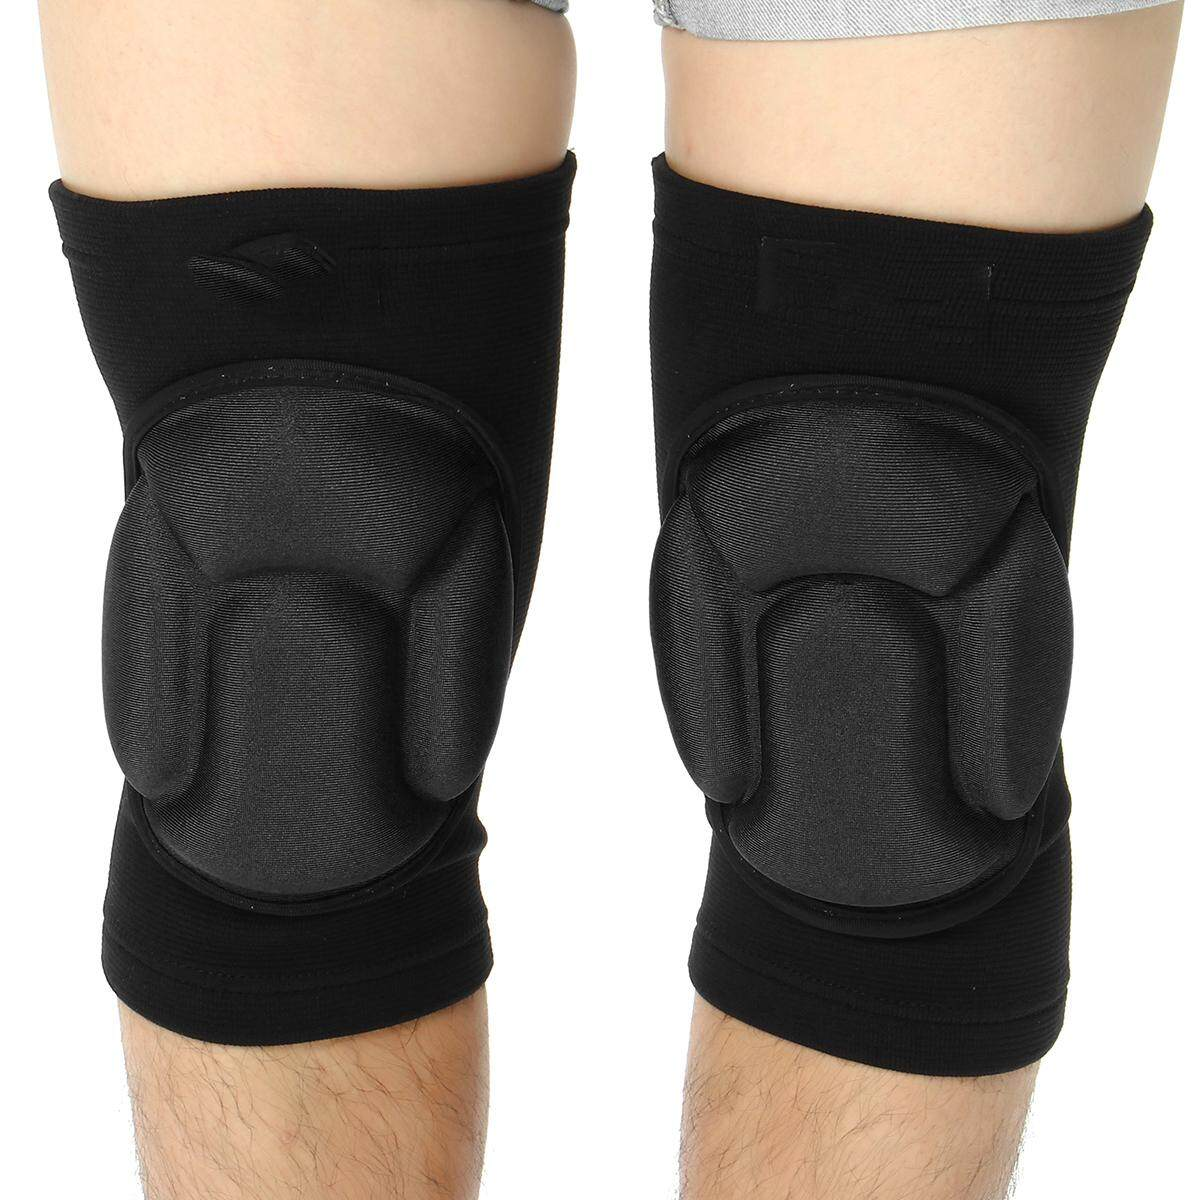 1 Pair Knee Pads for volleyball Work Construction Gardening Cleaning and Dancing - intl